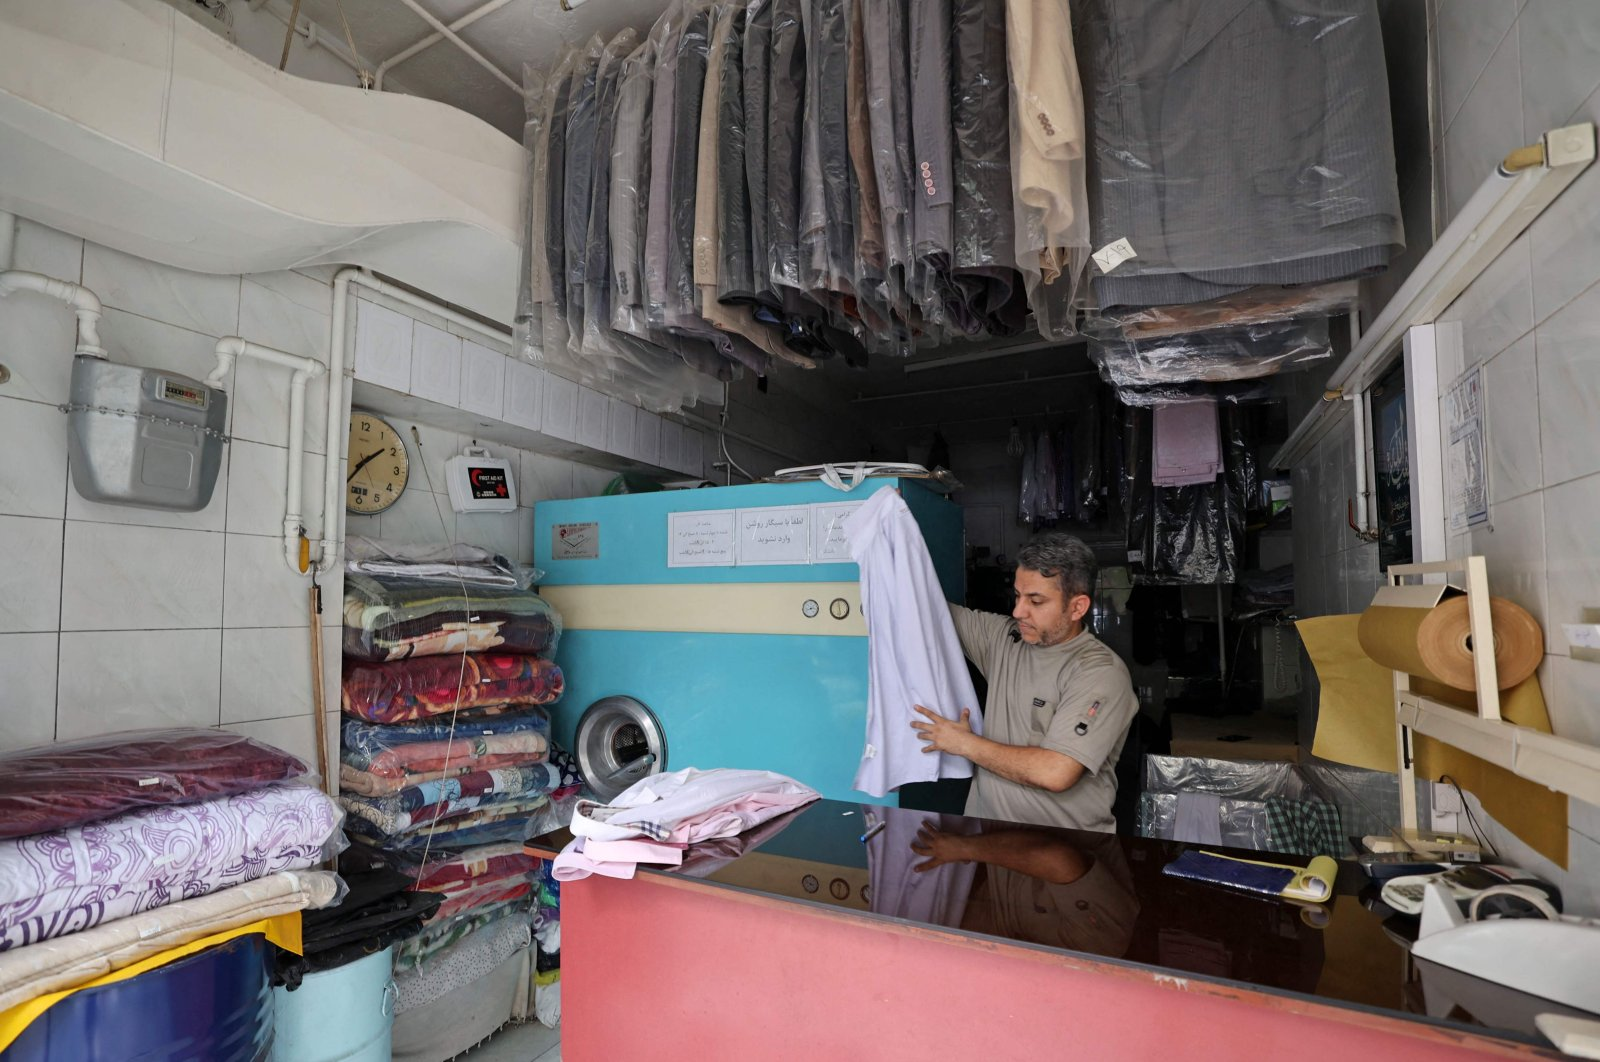 An employee sorts laundry during a power outage in Tehran, Iran, May 23, 2021. (AFP Photo)